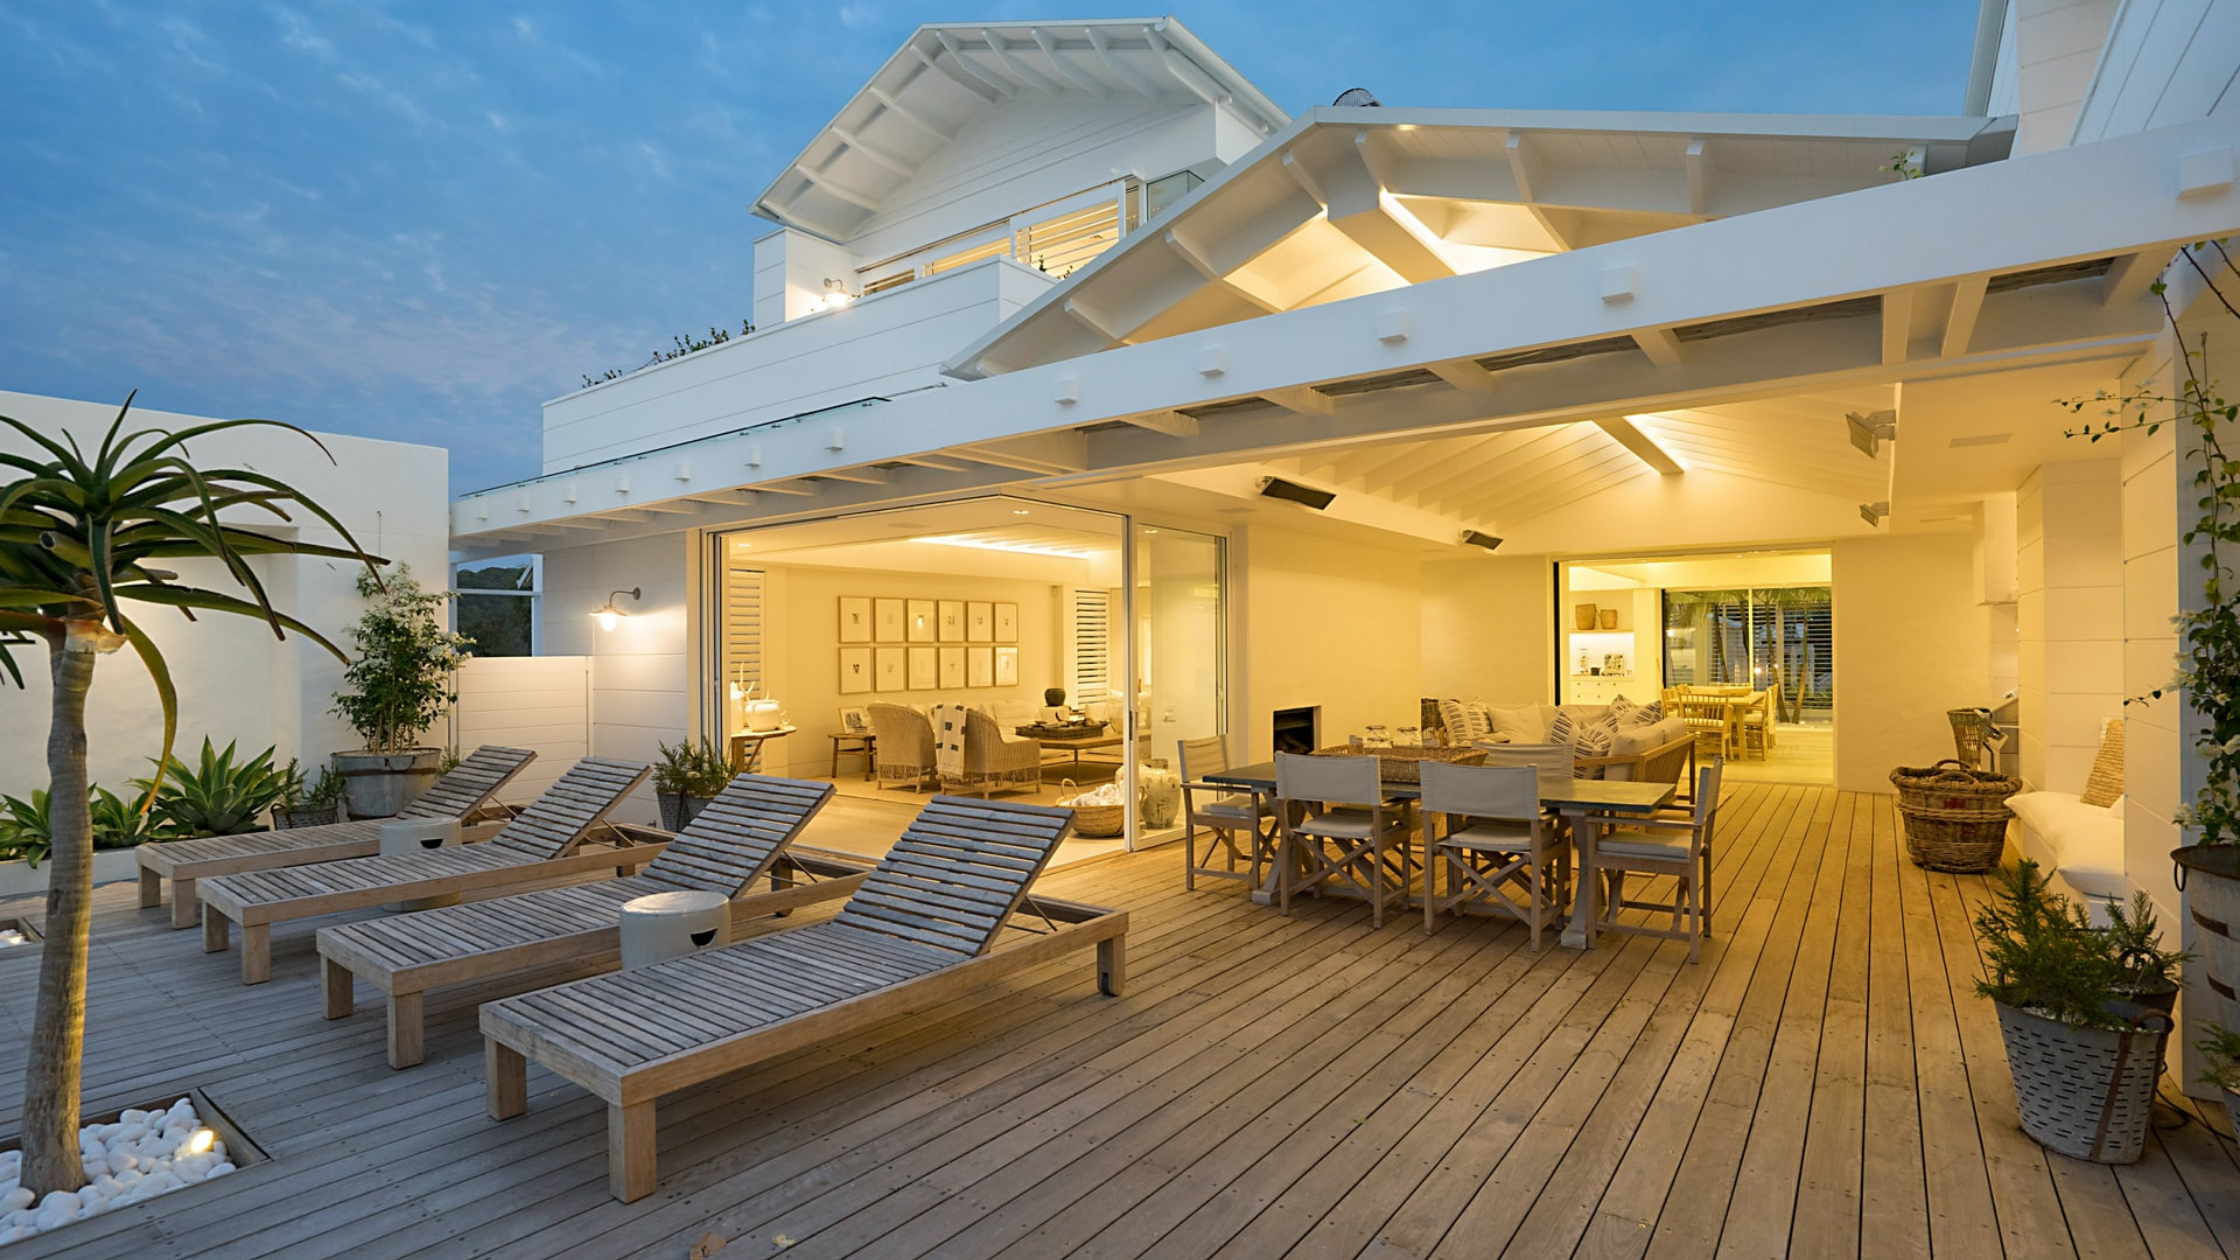 Outdoor entertaining area with timber decking and timber furniture with a white hamptons style house